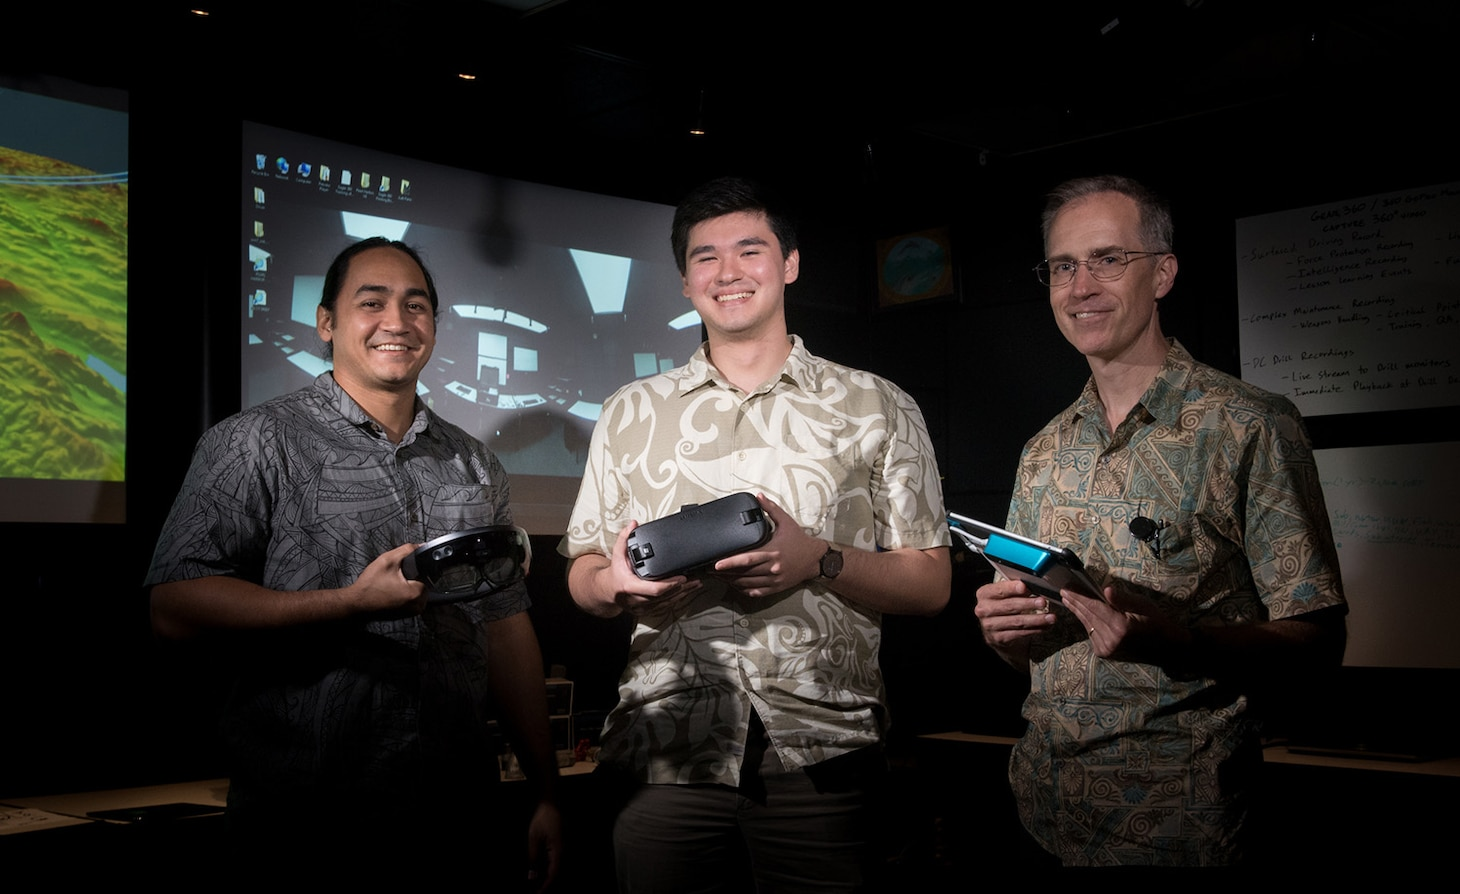 PEARL HARBOR-HICKAM (February 9, 2017) (left to right) John Paul McManus, Timothy Byers, and Christopher Bretz pose in the iLab at Naval Submarine Training Center Pacific Feb. 8, 2017.  The iLab is a initiative launched to spur the rapid development of ideas and concepts to actionable use in submarine warfare. (U.S. Navy photo by Mass Communication Specialist 1st Class Daniel Hinton)